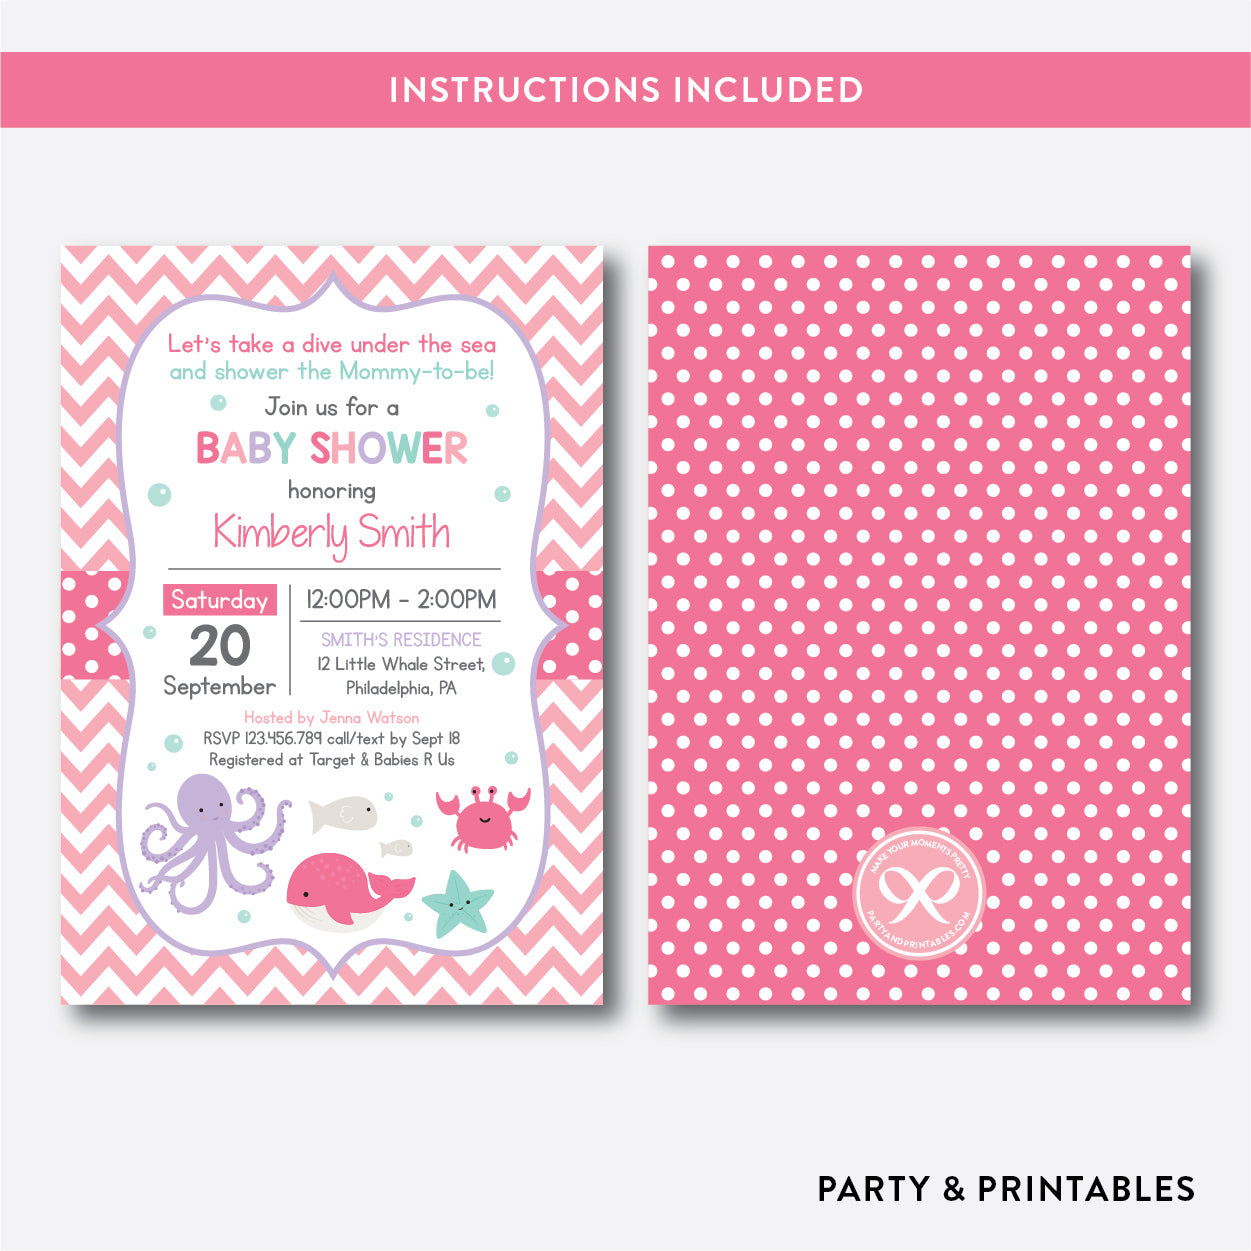 Under The Sea Baby Shower Invitation / Editable / Instant Download (SBS.66), invitation - Party and Printables